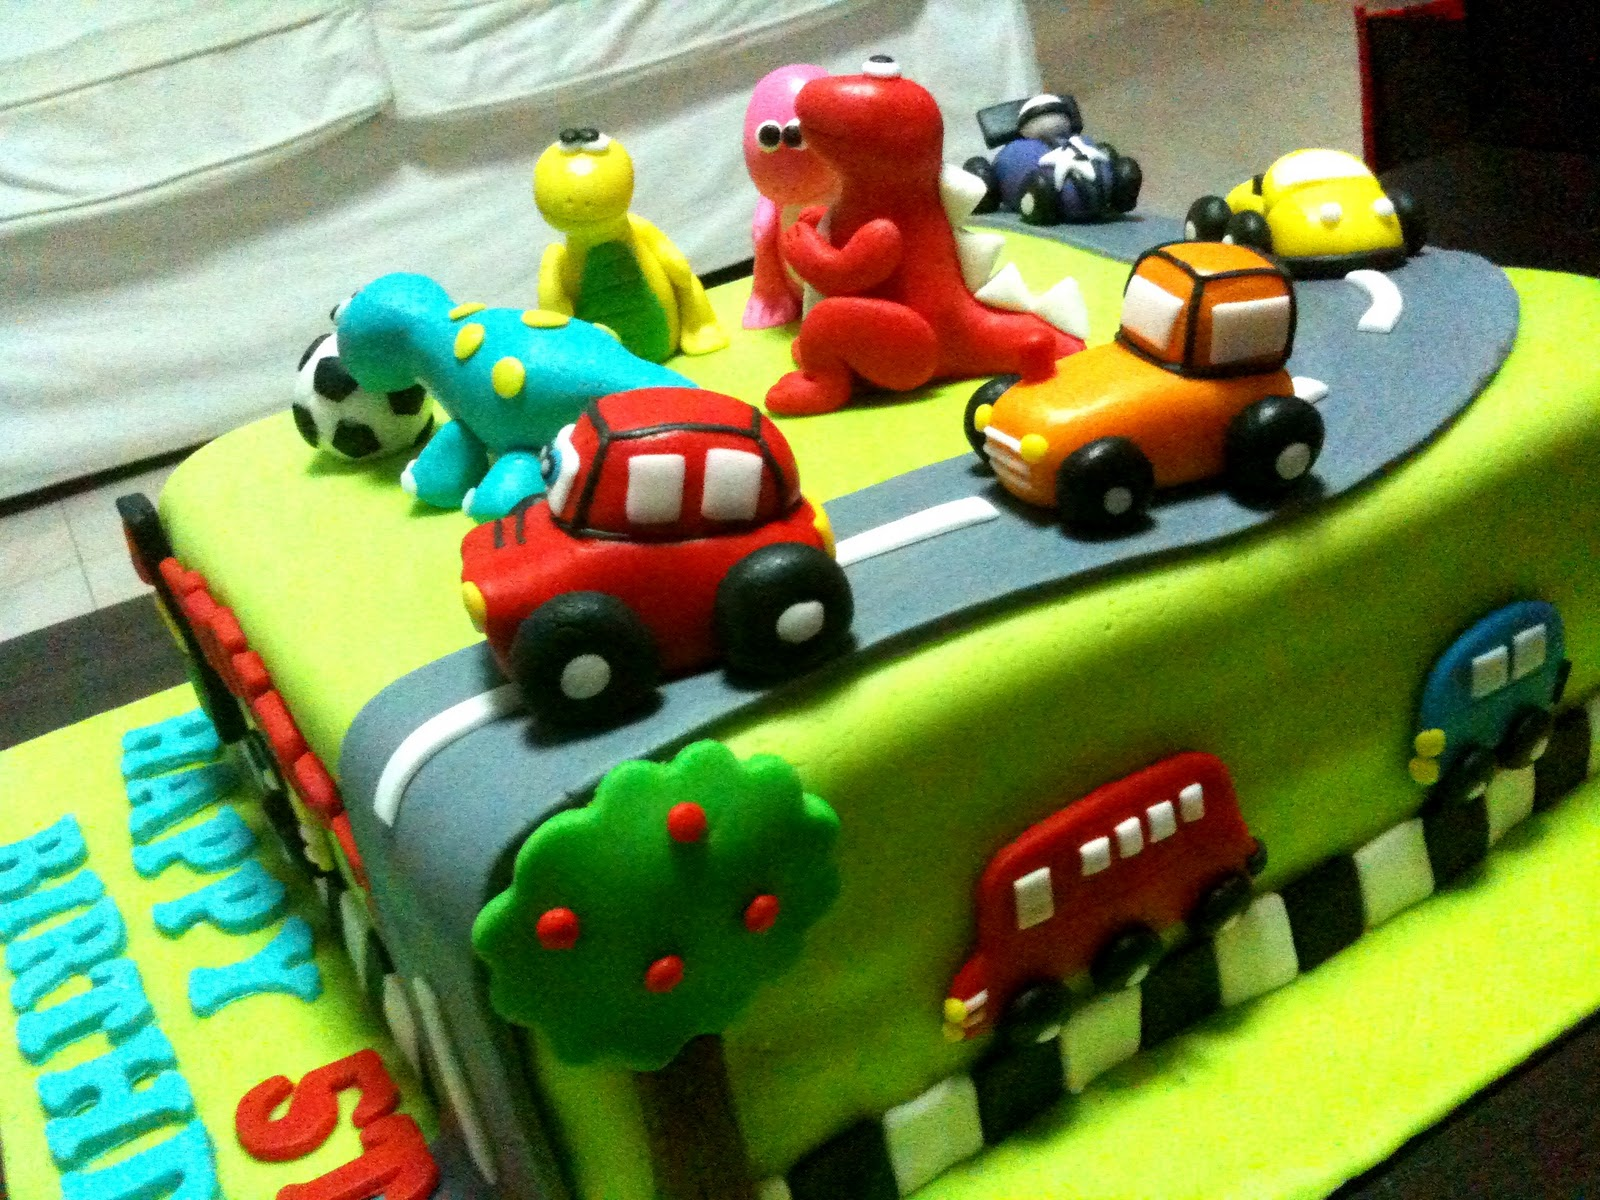 Oven Creations: Happy 5th Birthday Ayush